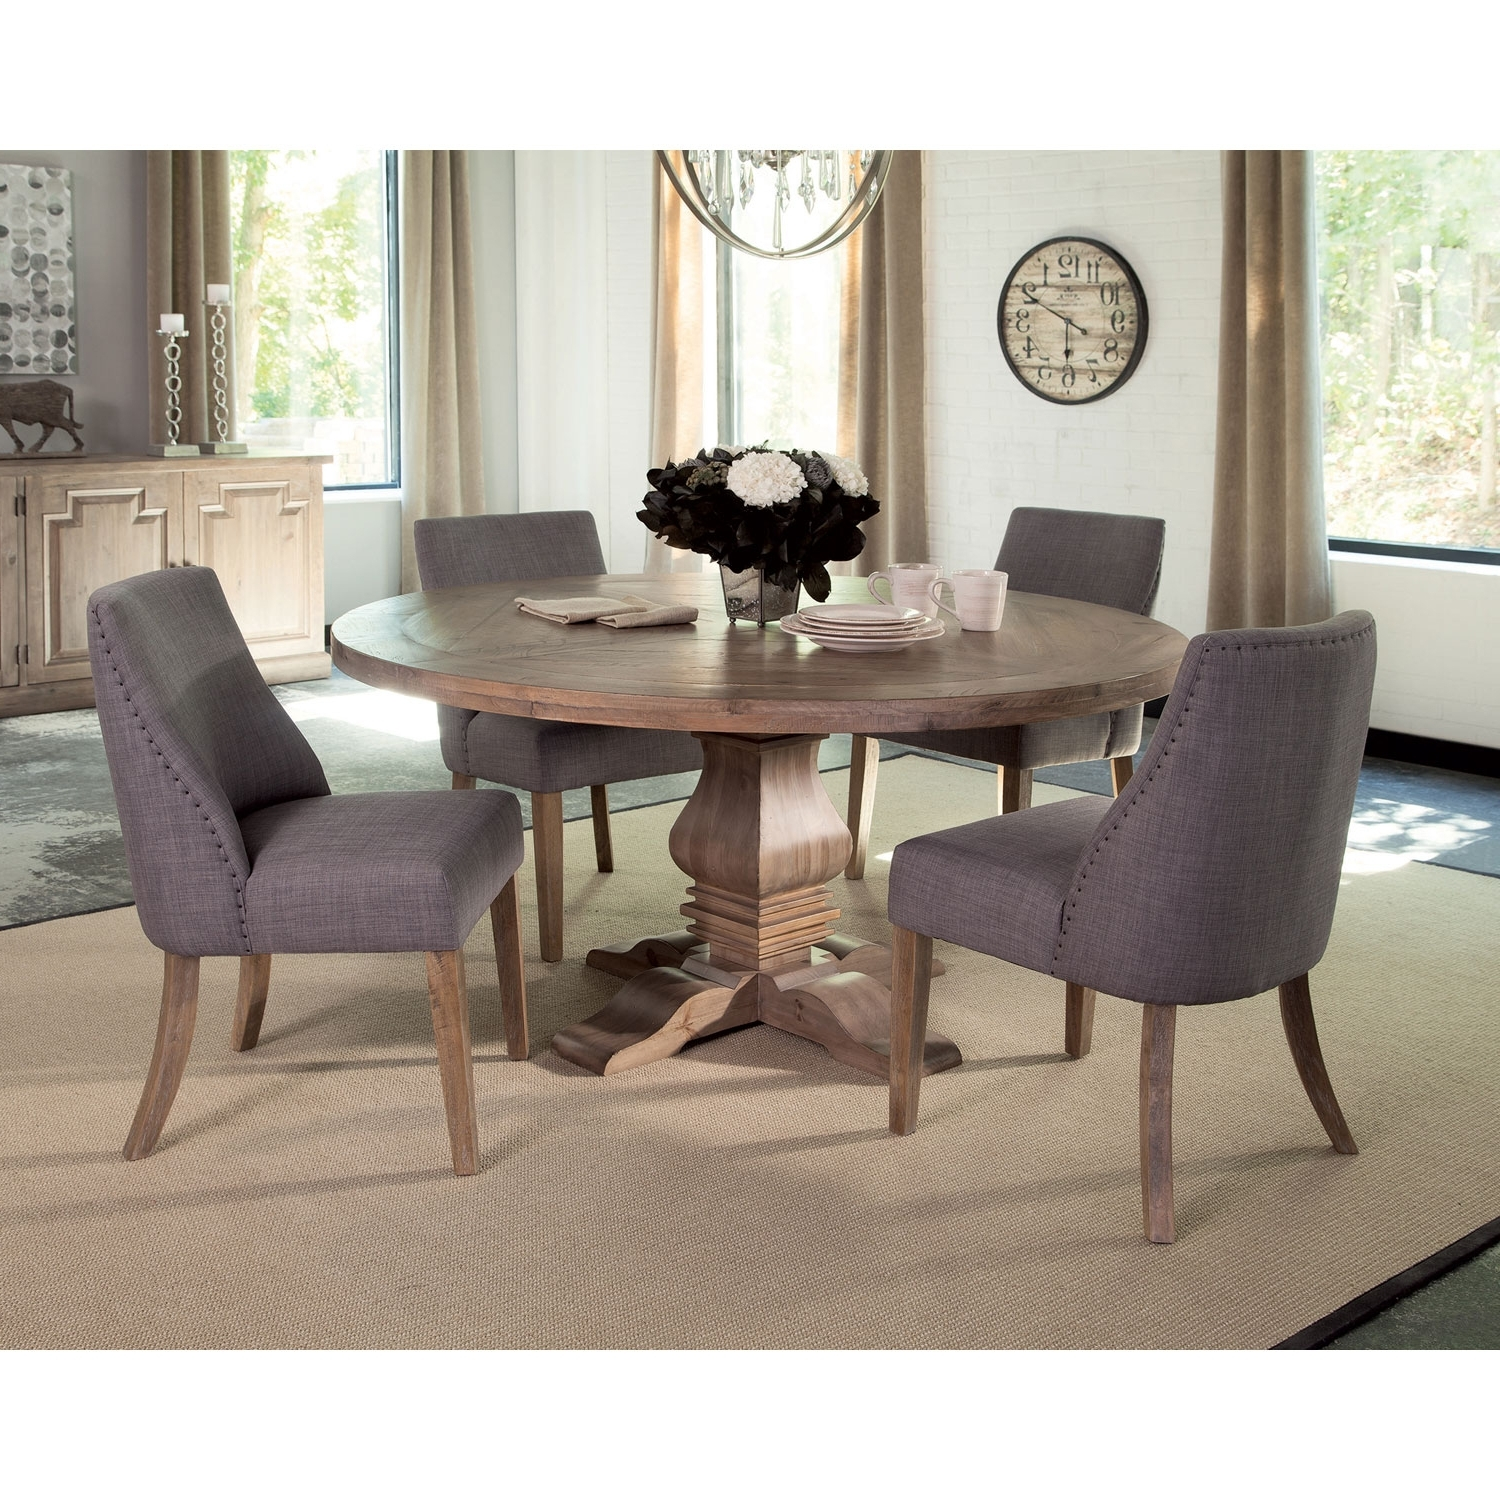 Catchy Circle Kitchen Table In Donny Osmond Home Florence Pine Round Throughout Widely Used Macie Round Dining Tables (View 2 of 25)